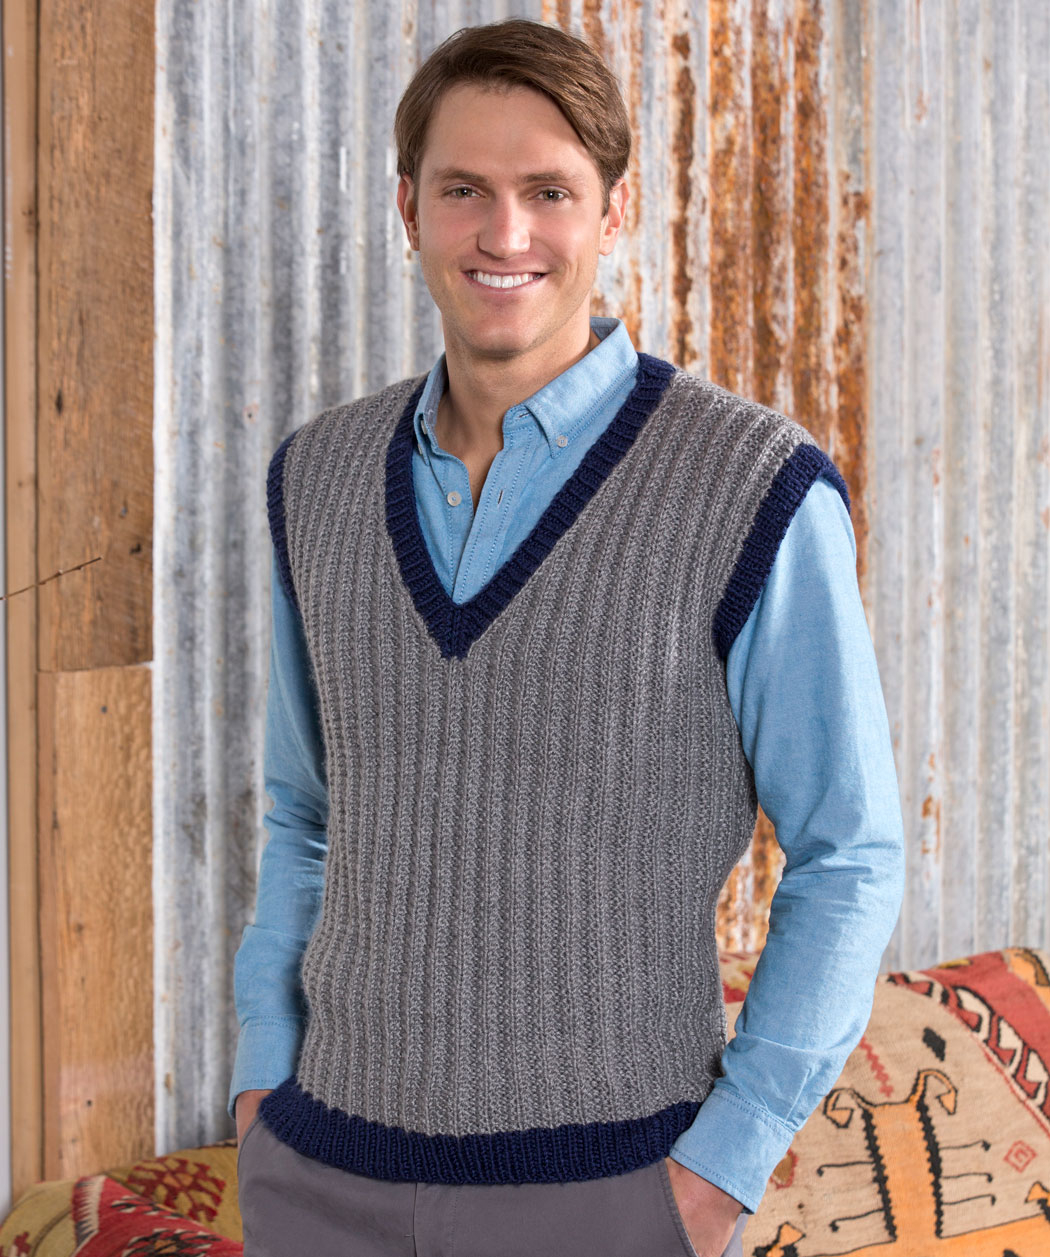 Free Knitting Patterns For Men's Sweaters 36 Knit And Crochet Patterns For Men Red Heart